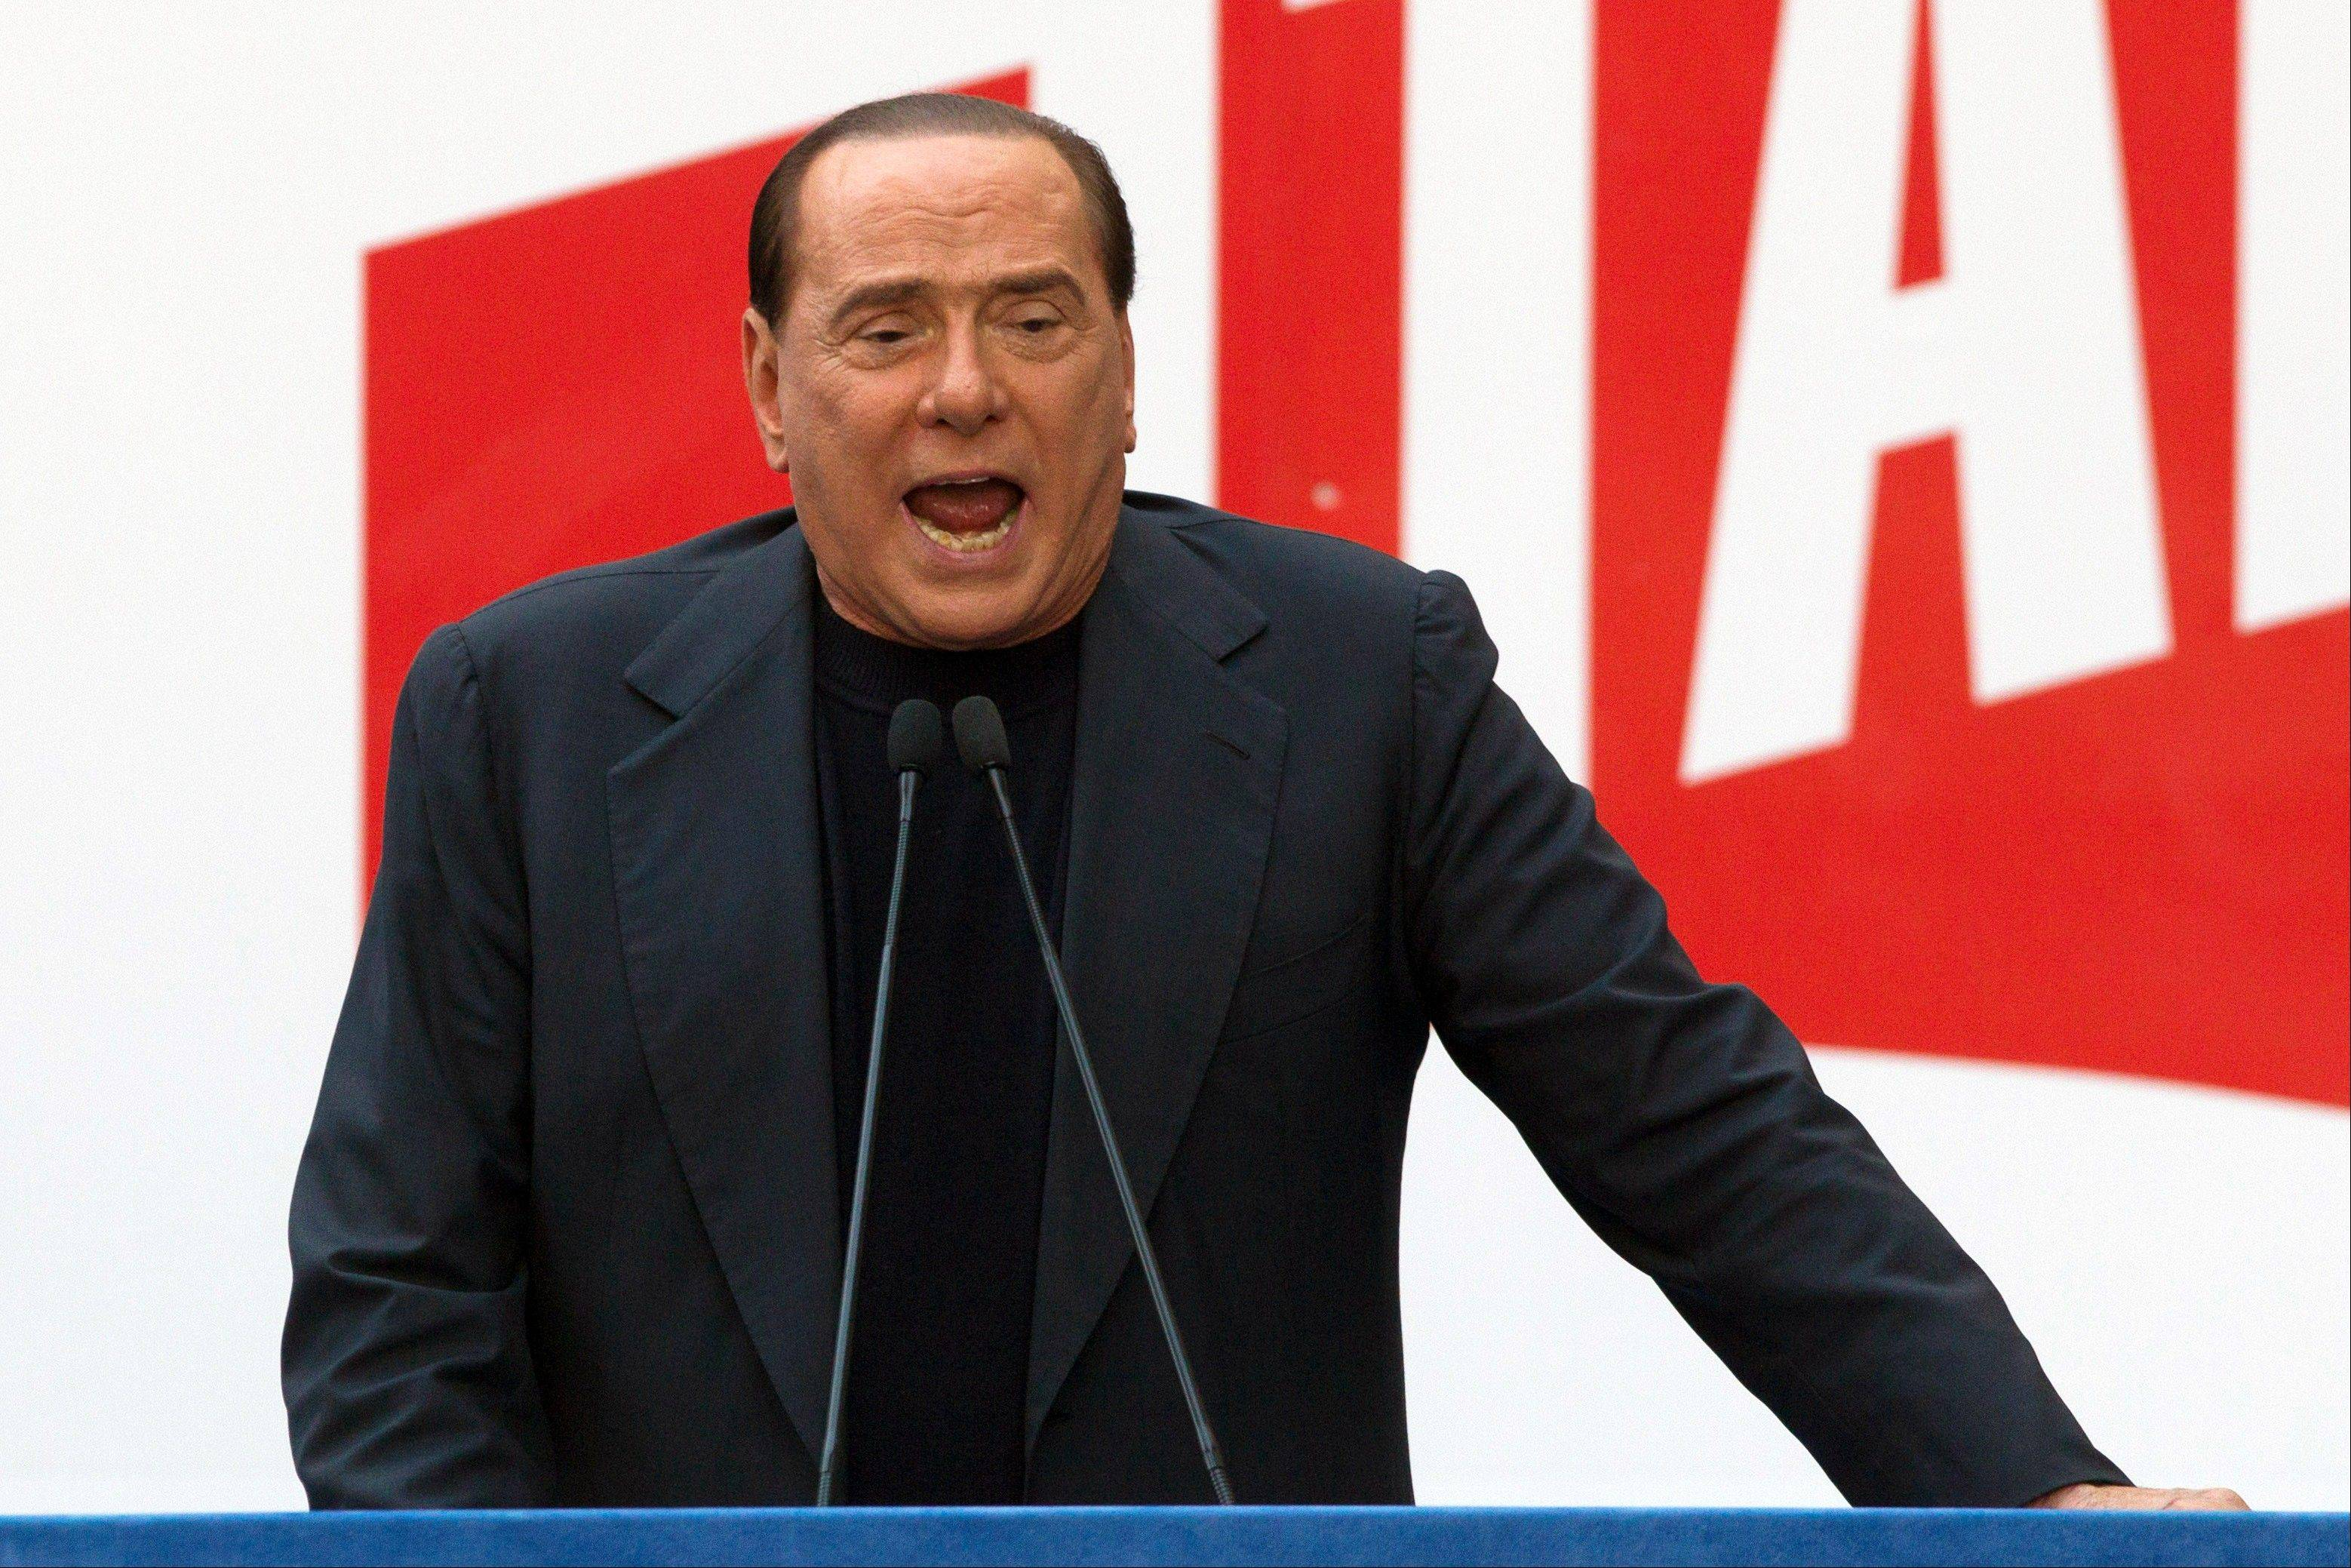 In this Sunday, Aug. 4, 2013 file photo, former Italian Premier Silvio Berlusconi addresses supporters during a demonstration in front of his residence in Rome. Government ministers in former Premier Silvio Berlusconi�s political party have announced Saturday their intention to resign their posts, a move that raises tension in the uneasy coalition government and increases the possibility of early elections. Vice Premier Angelino Alfano�s spokeswoman said Saturday the five ministers from Berlusconi�s center-right People of Freedom Party have decided to submit their resignations.